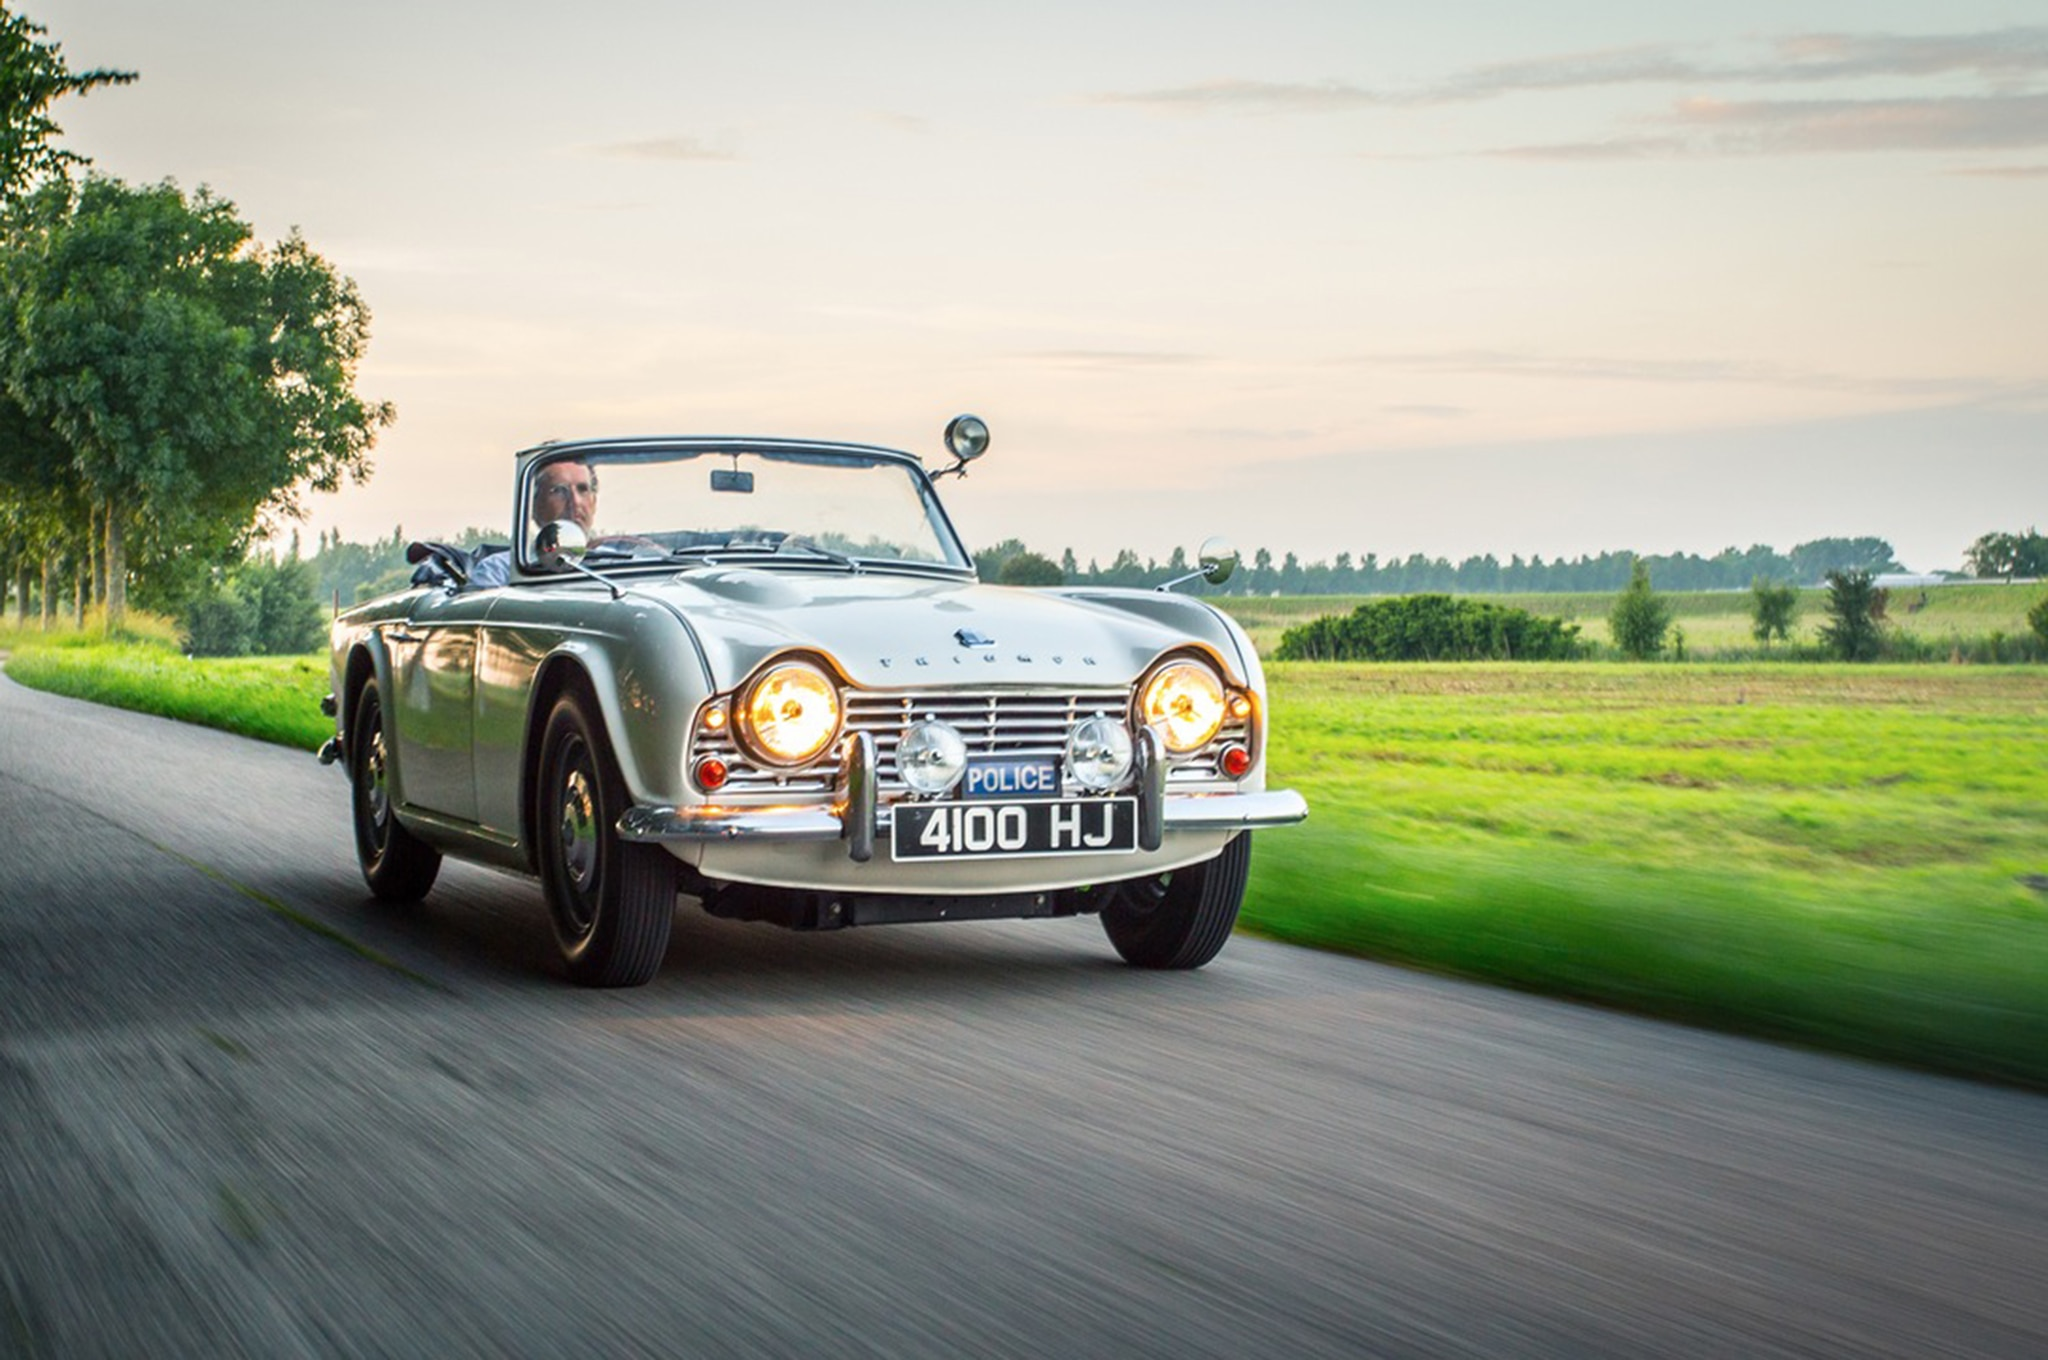 1962 Triumph TR4 Police Car Front In Motion